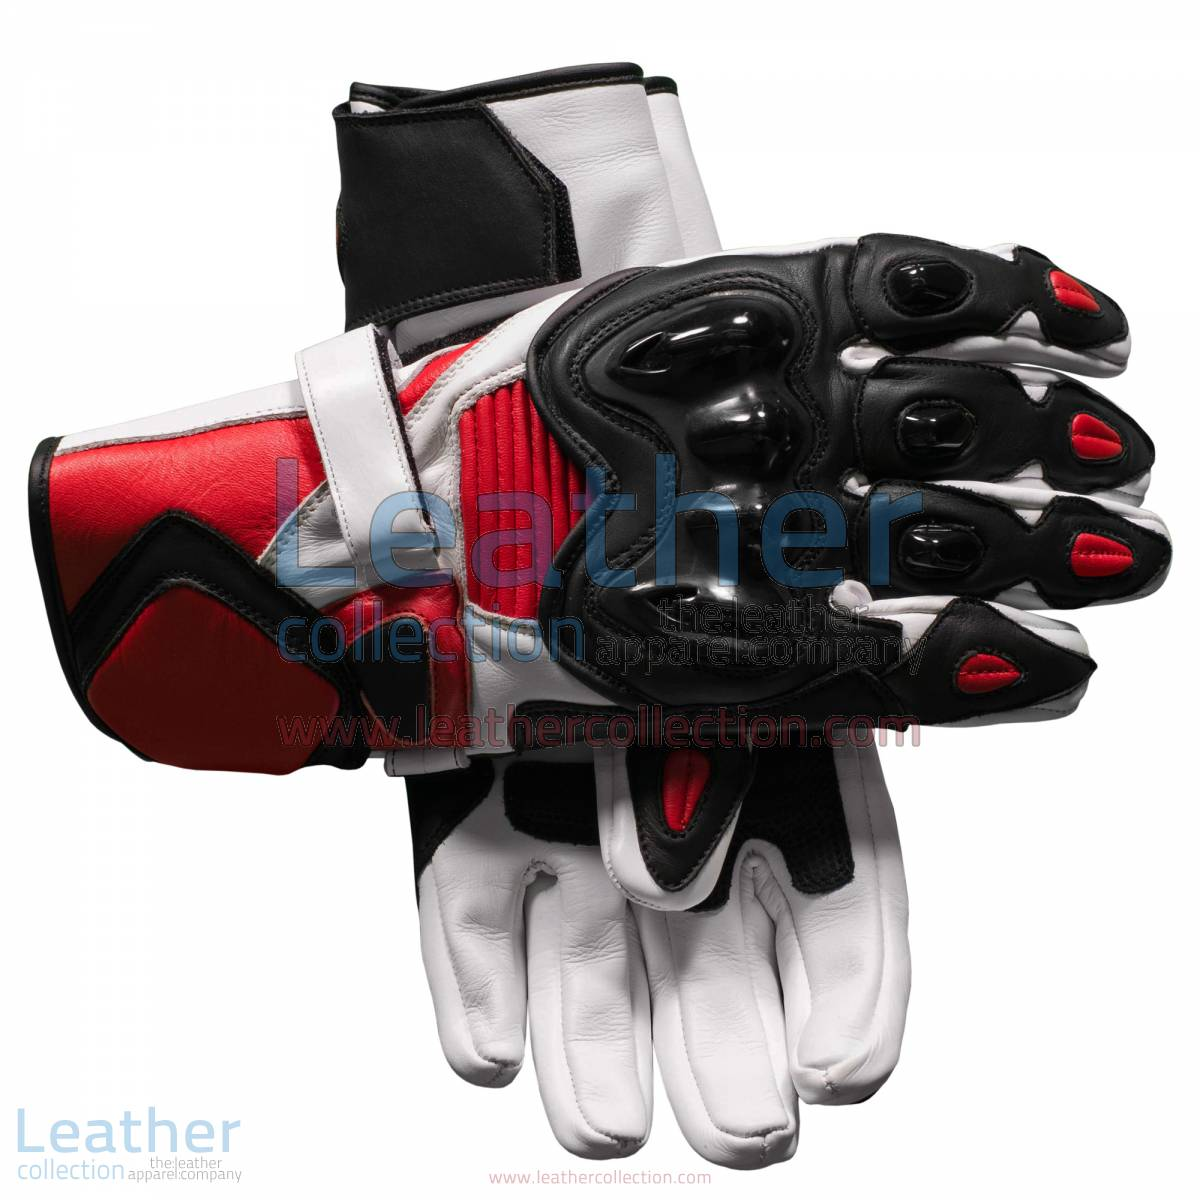 Bandit Race Gloves | race gloves